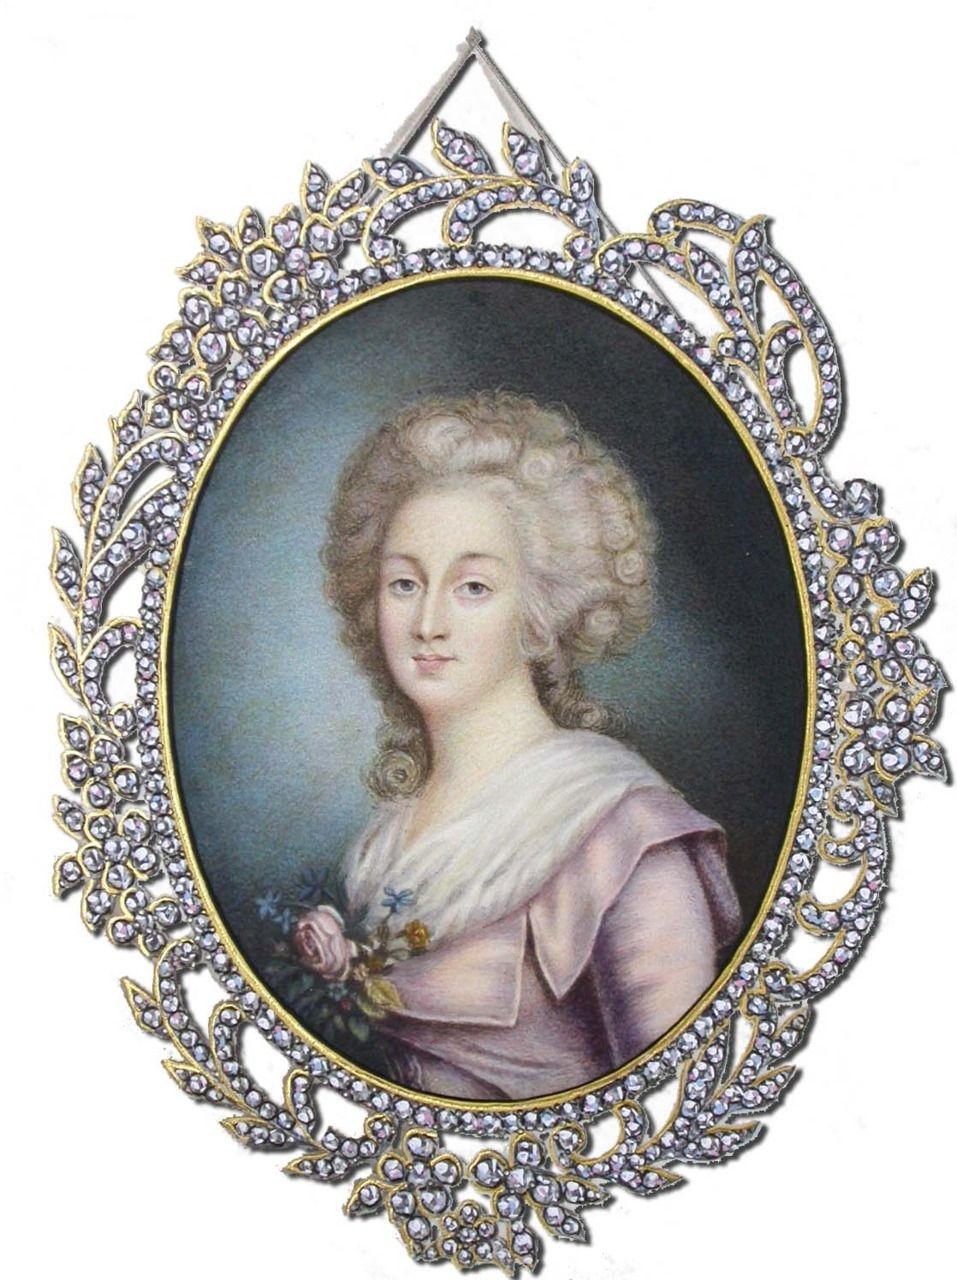 Miniature Portrait Of Madame Elizabeth by Jean Liotard (notice the jewels around the portrait)